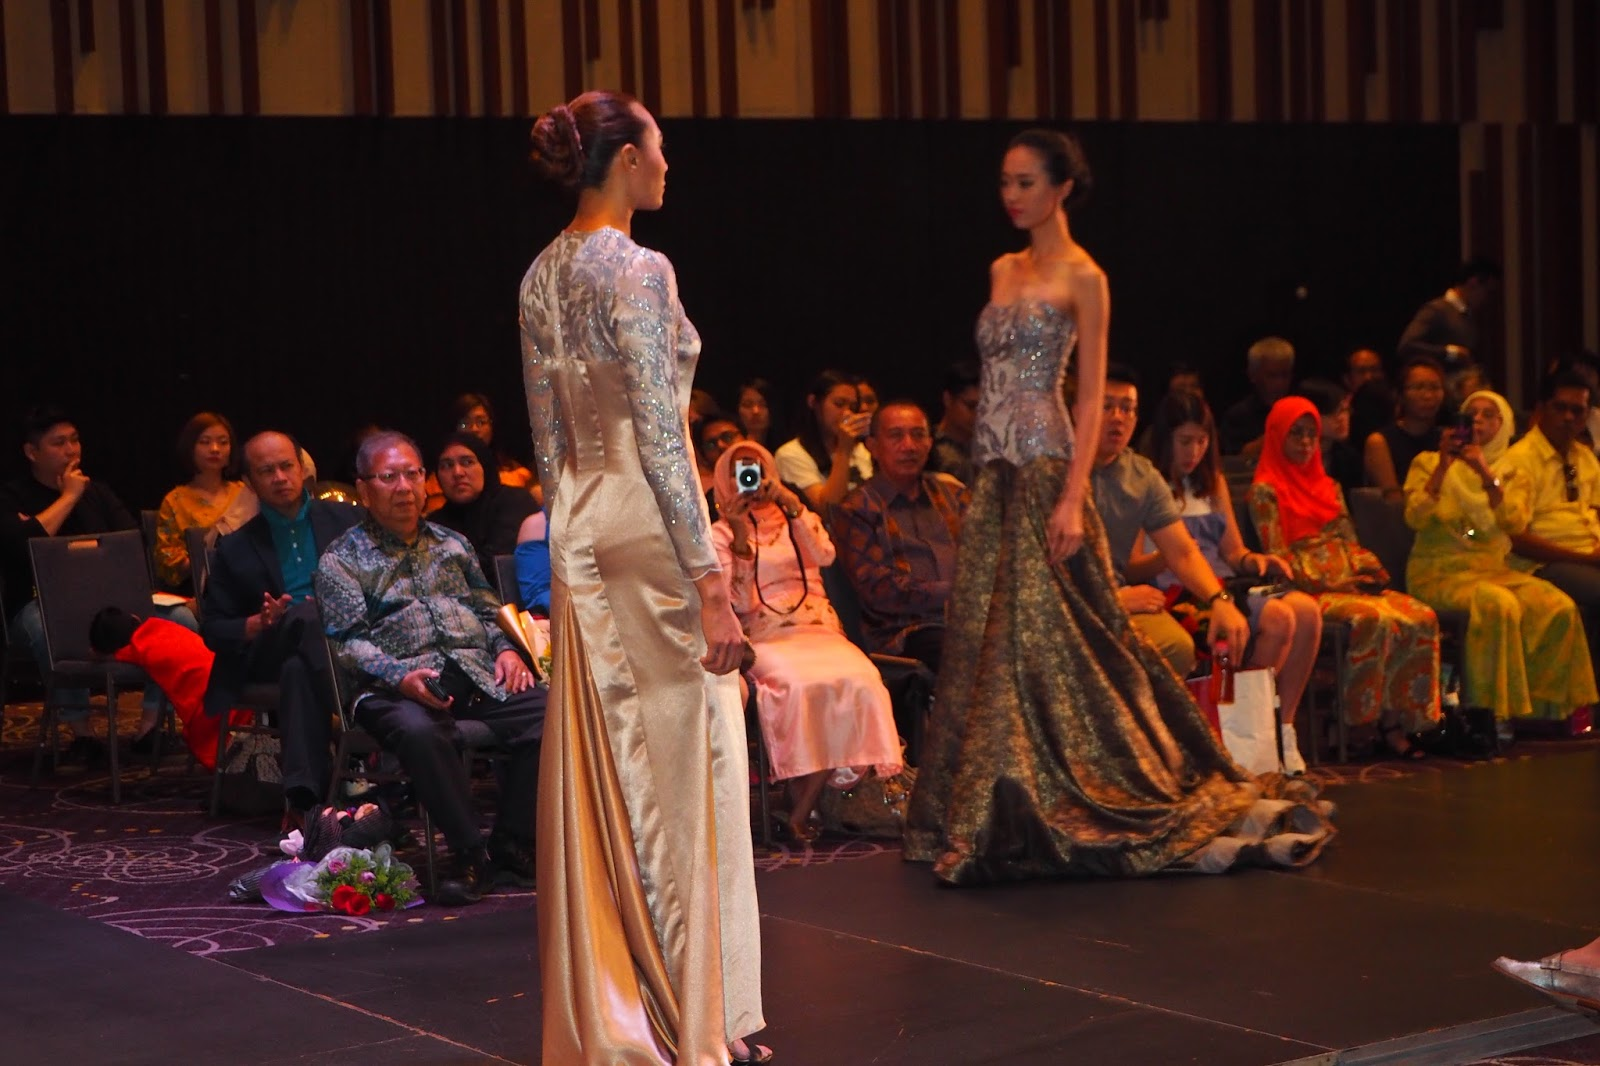 Kee Hua Chee Live Iftc International Academy Of Fashion Design Celebrated Its Convocation For Graduating Students With Songs Sung By Sally And Spectacular Fashion Show By Junior Senior And Graduates At